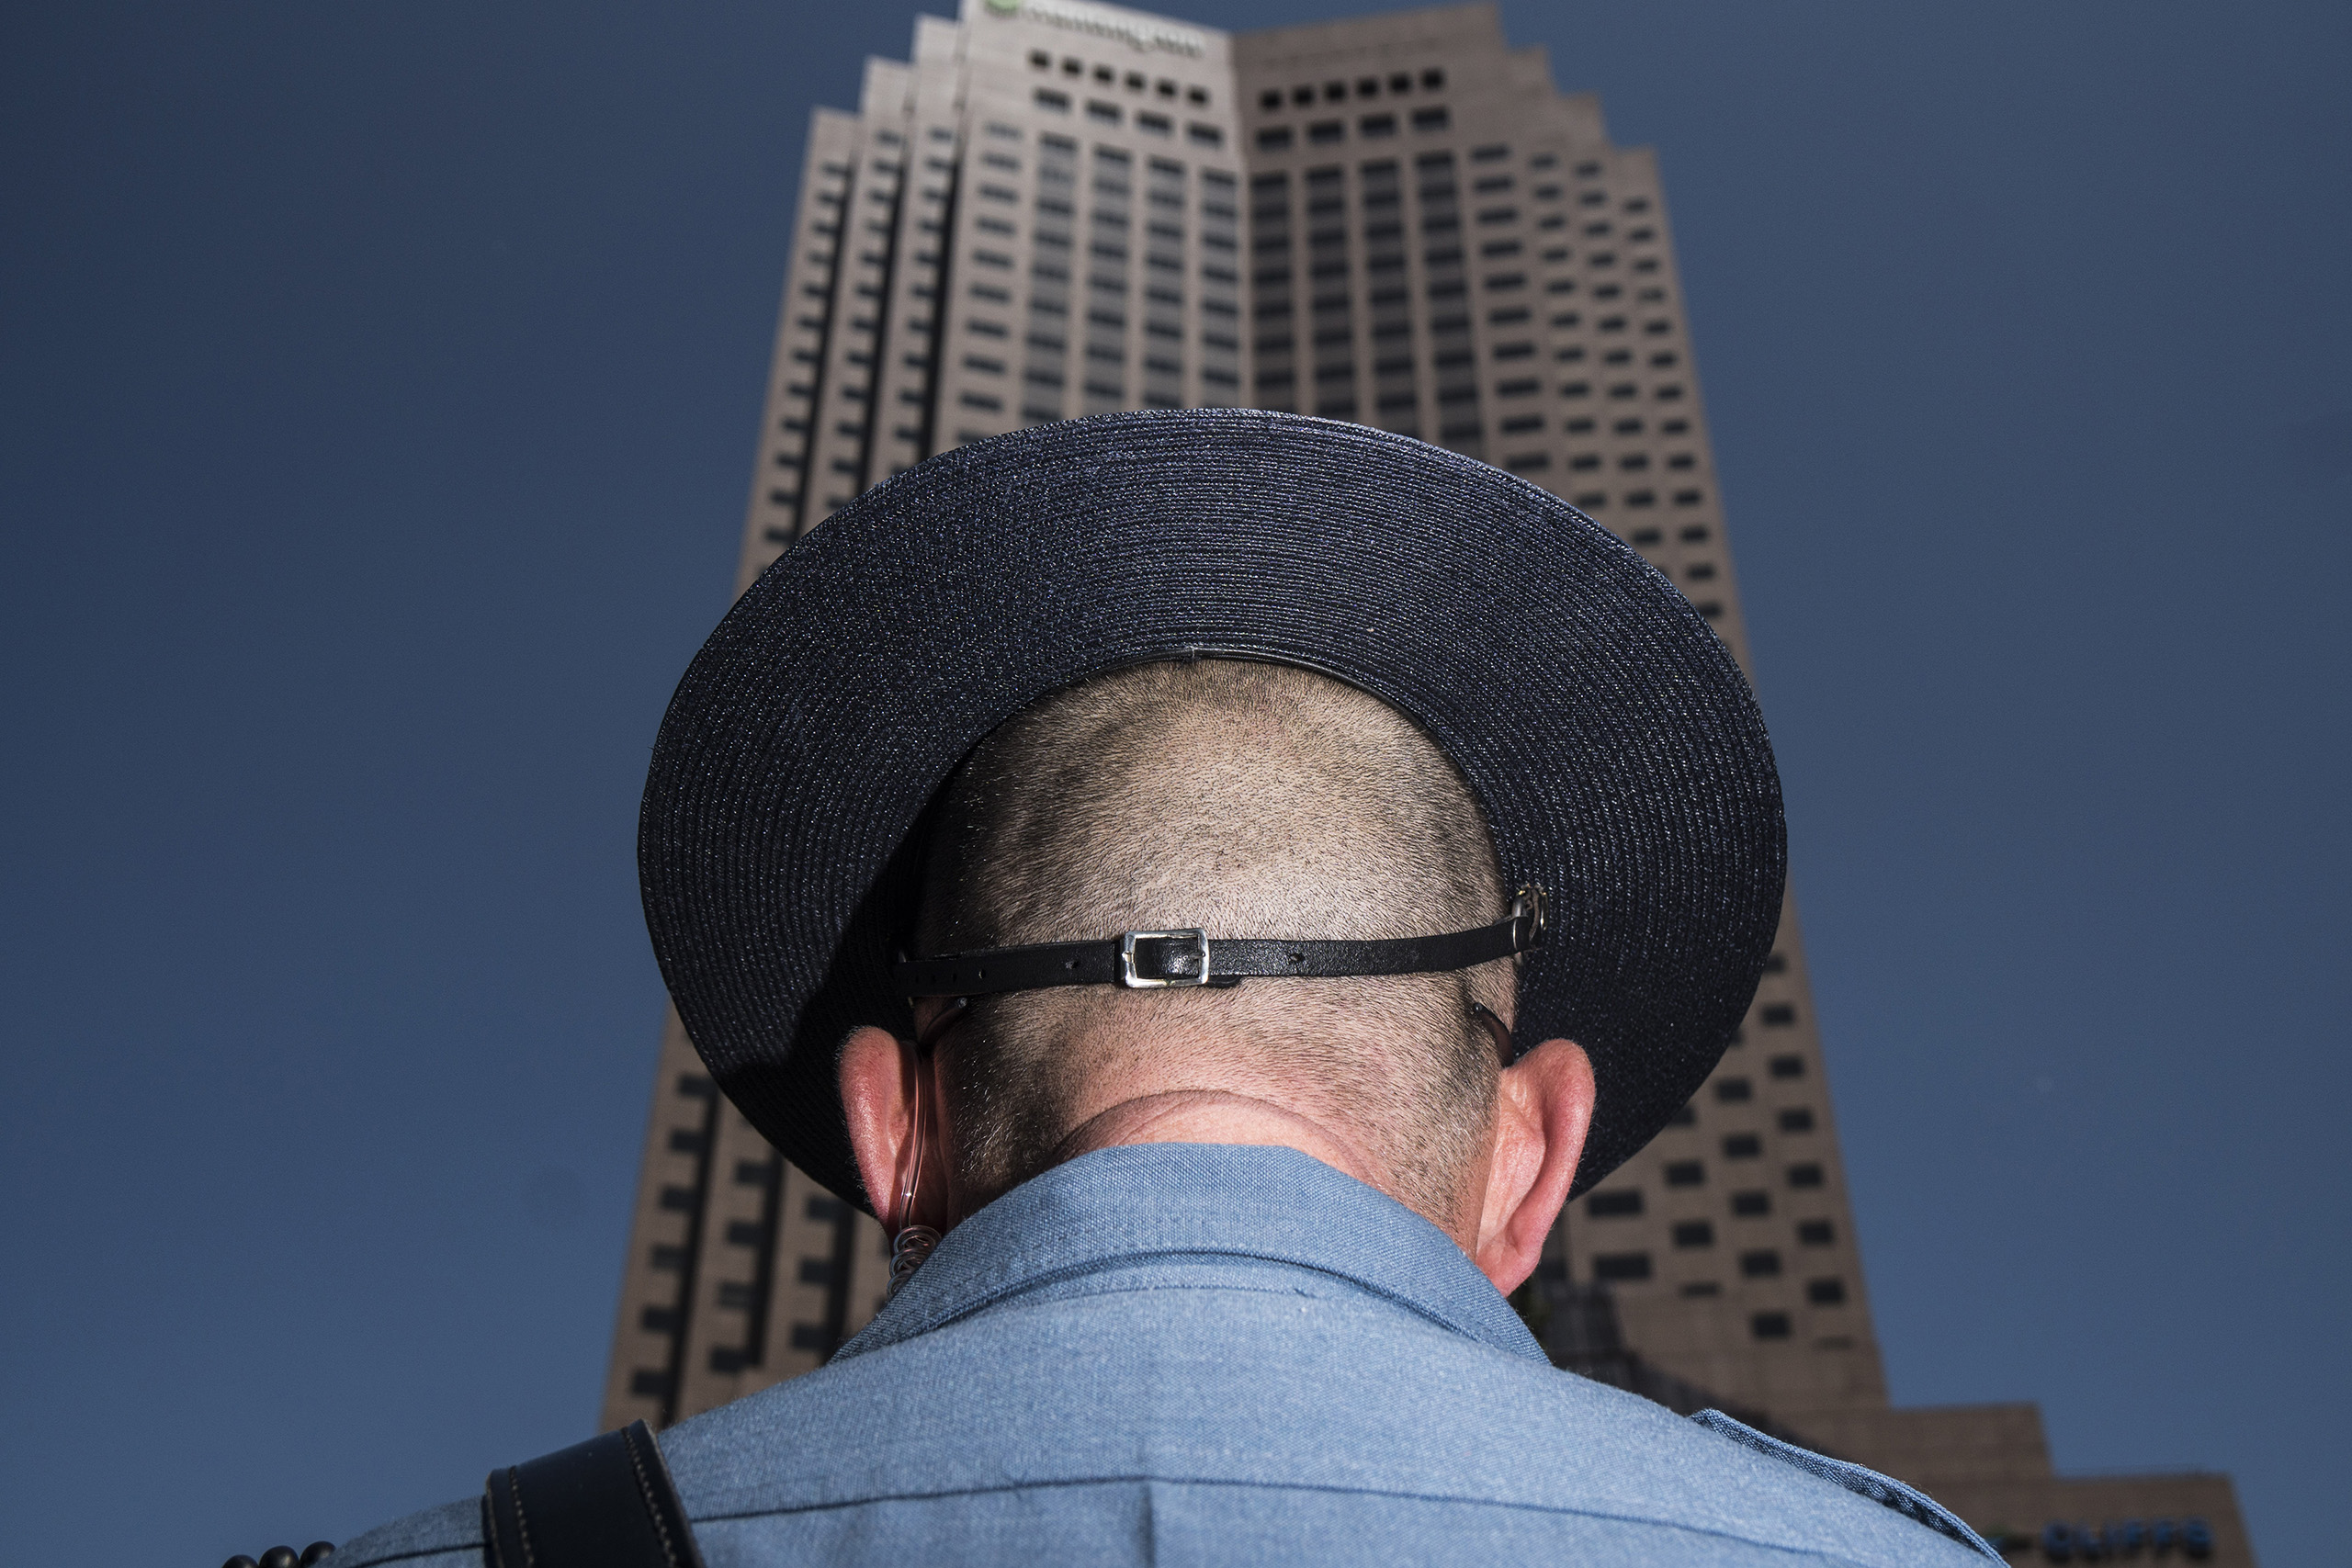 A police officer stands guard in the Cleveland Public Square,  July 19, 2016 outside of the Republican National Convention in Cleveland, Ohio.